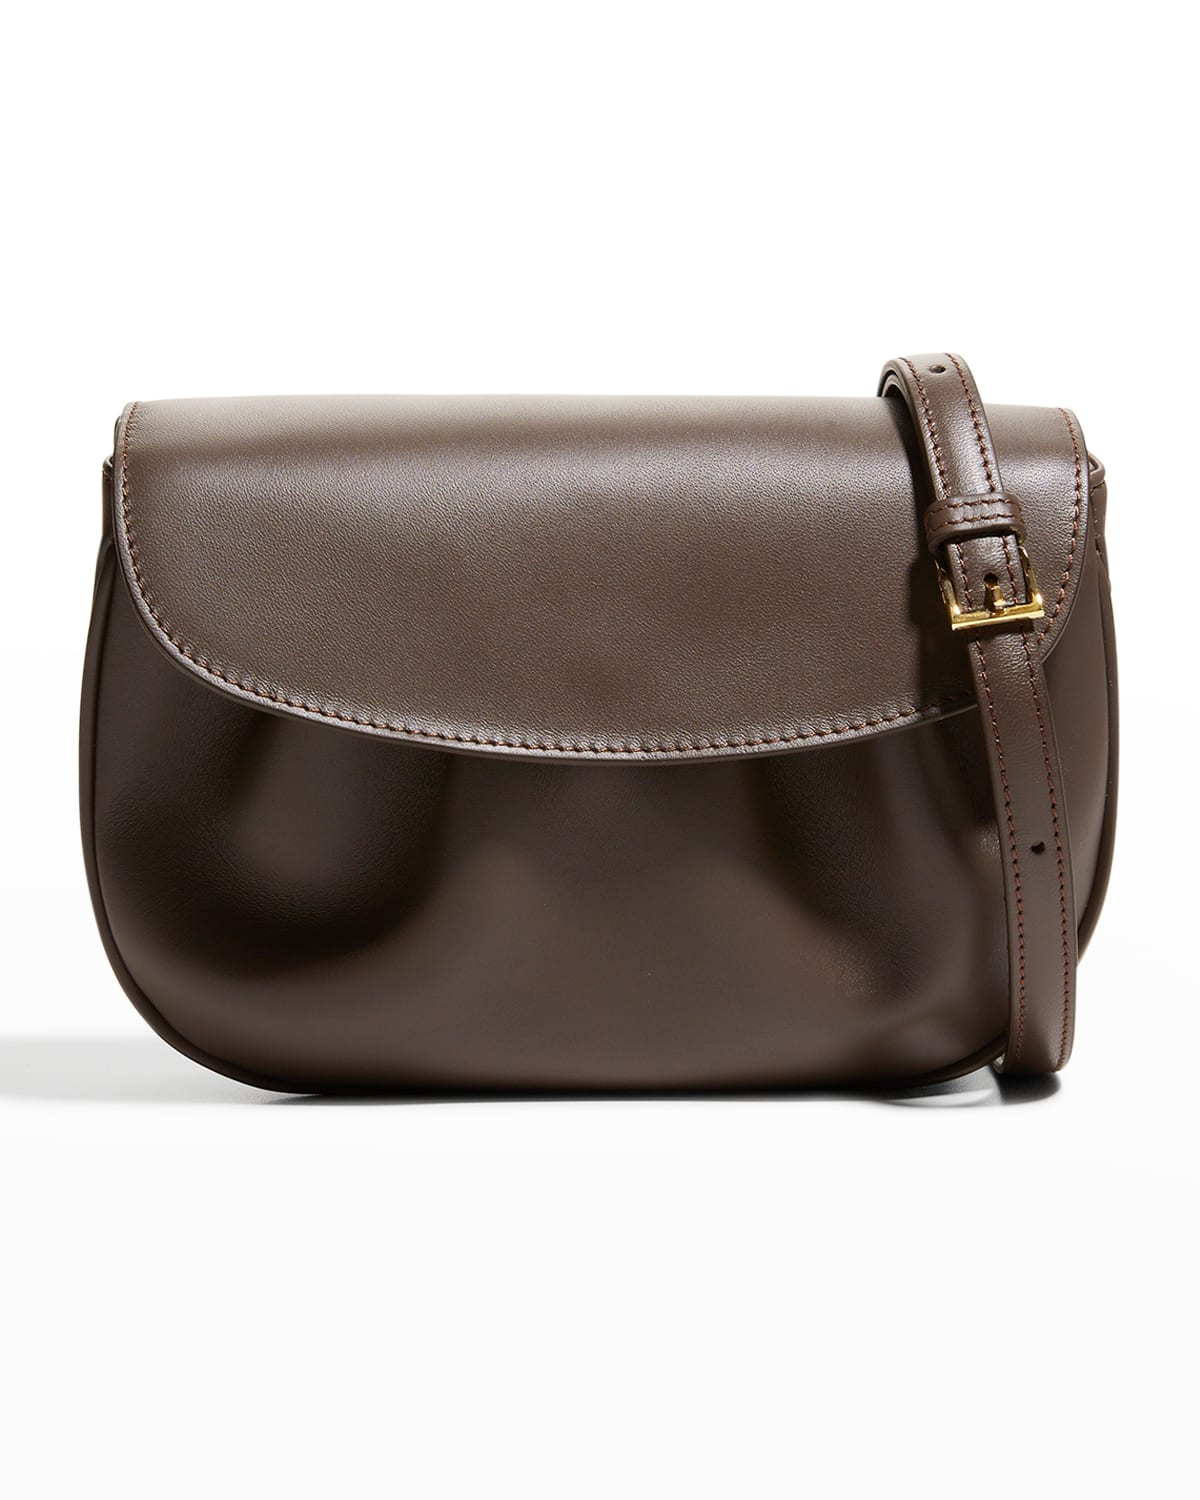 Dimple Ruched Flap Crossbody Bag